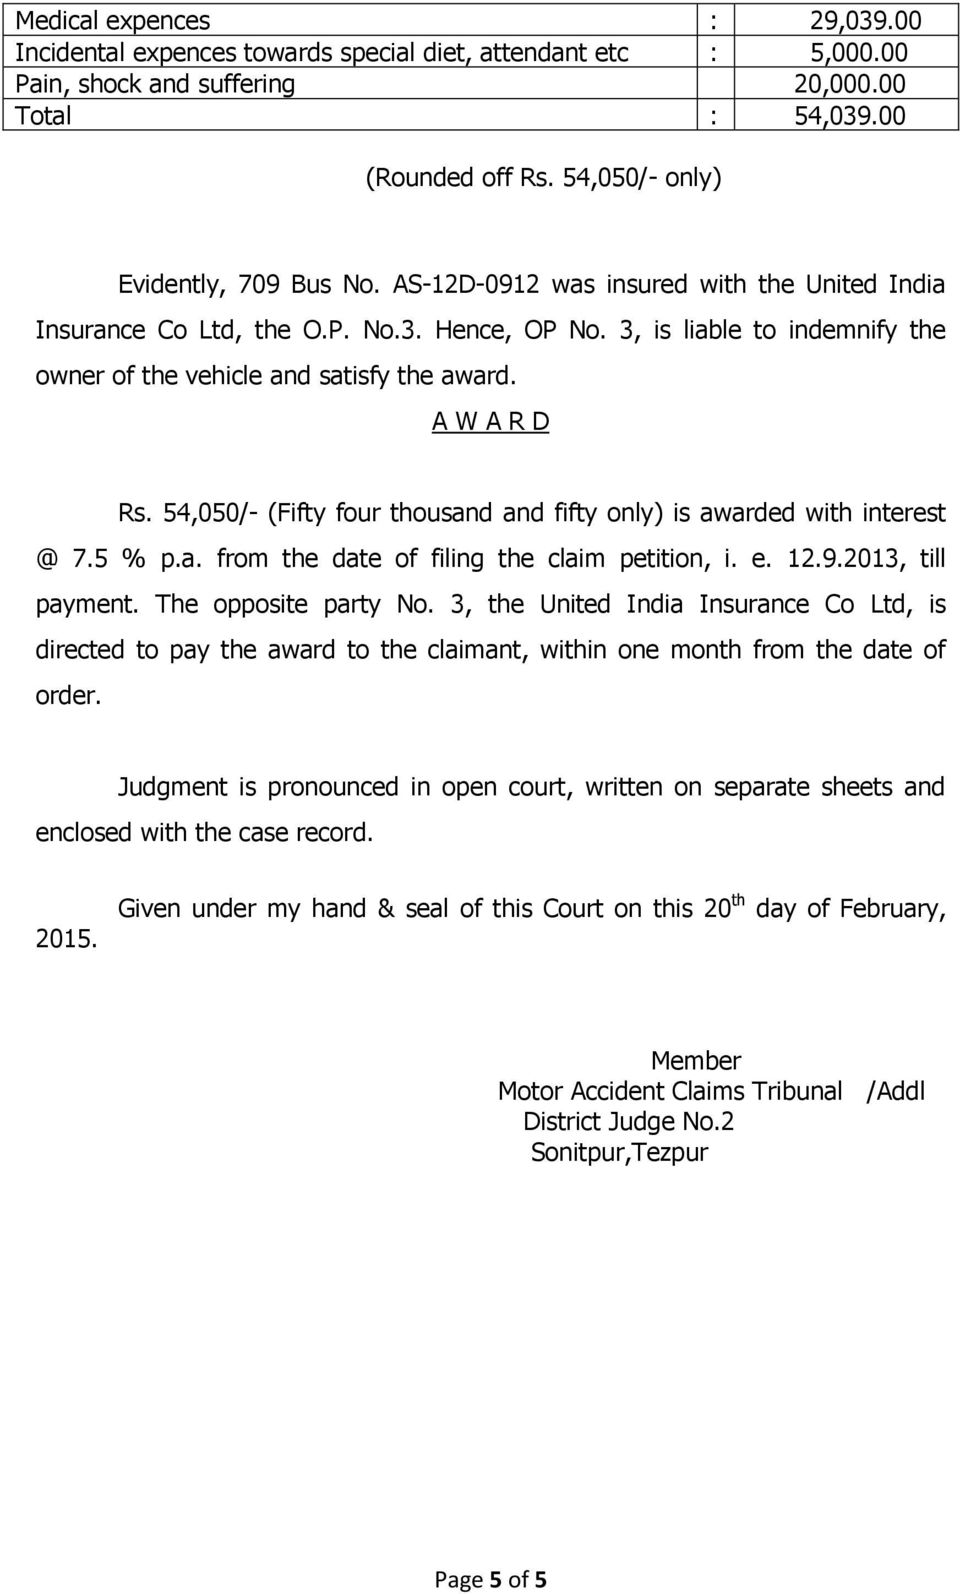 3, is liable to indemnify the owner of the vehicle and satisfy the award. A W A R D Rs. 54,050/- (Fifty four thousand and fifty only) is awarded with interest @ 7.5 % p.a. from the date of filing the claim petition, i.